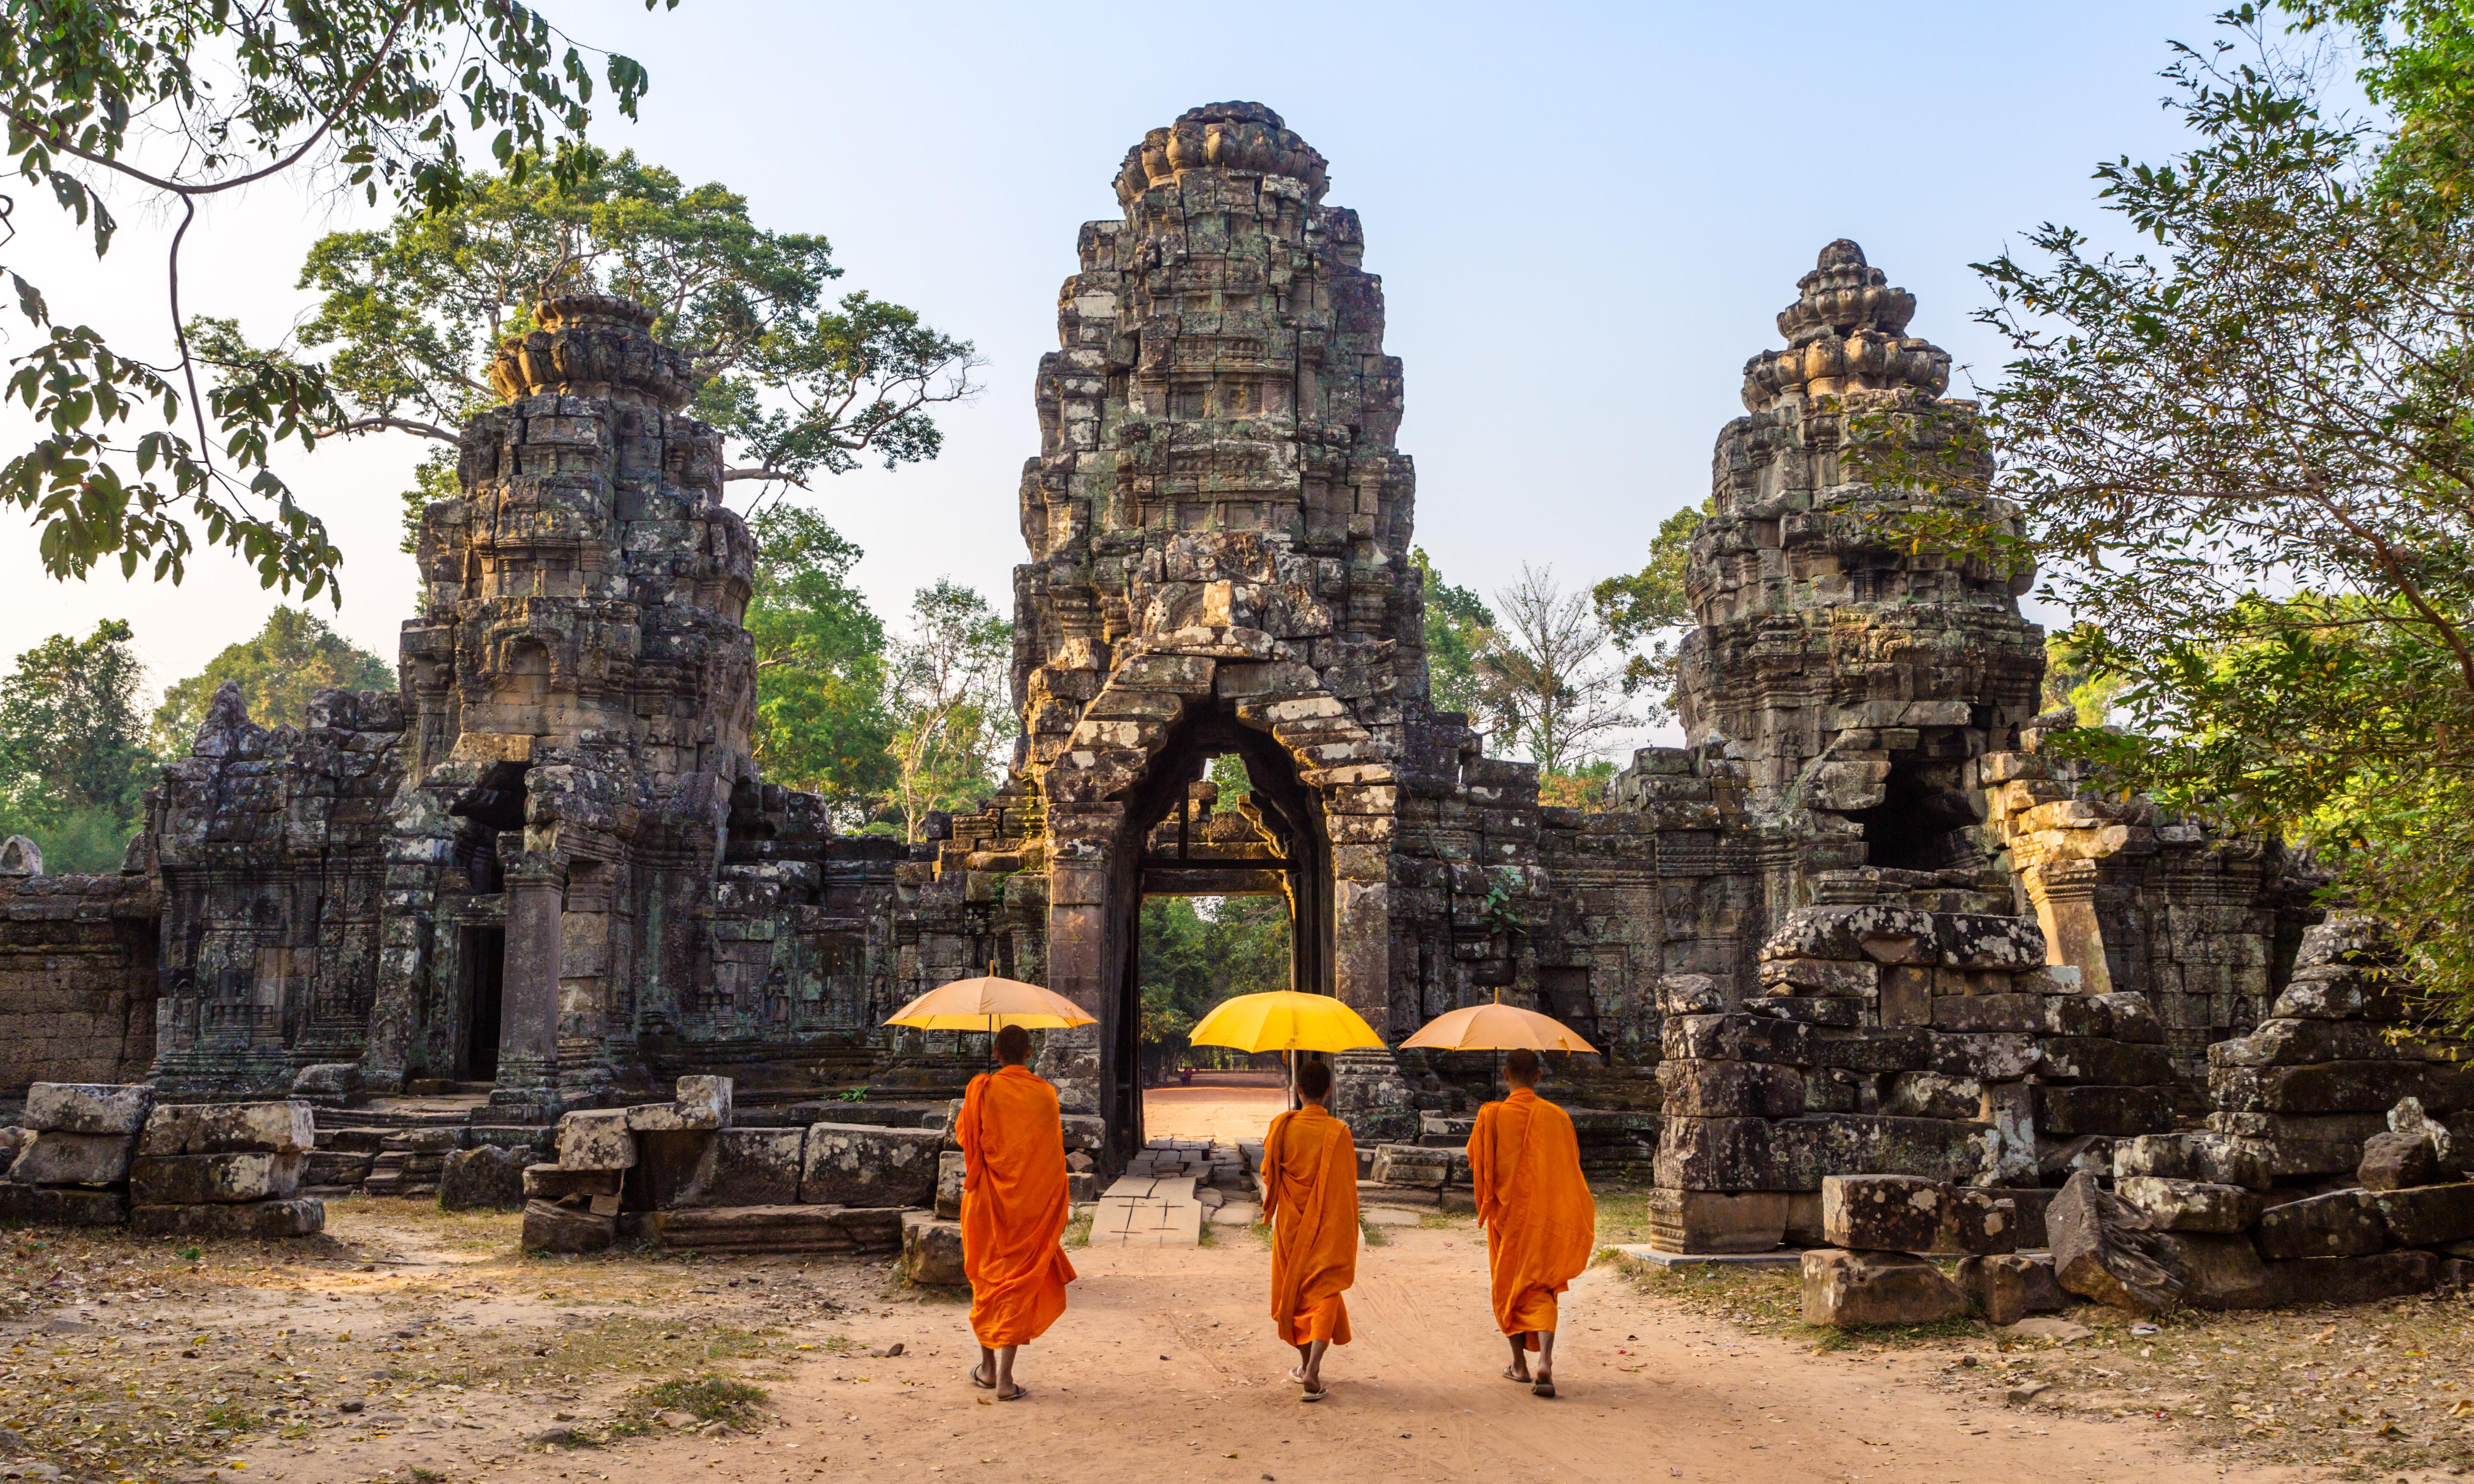 Running among the ruins: seeing Cambodia at a trot